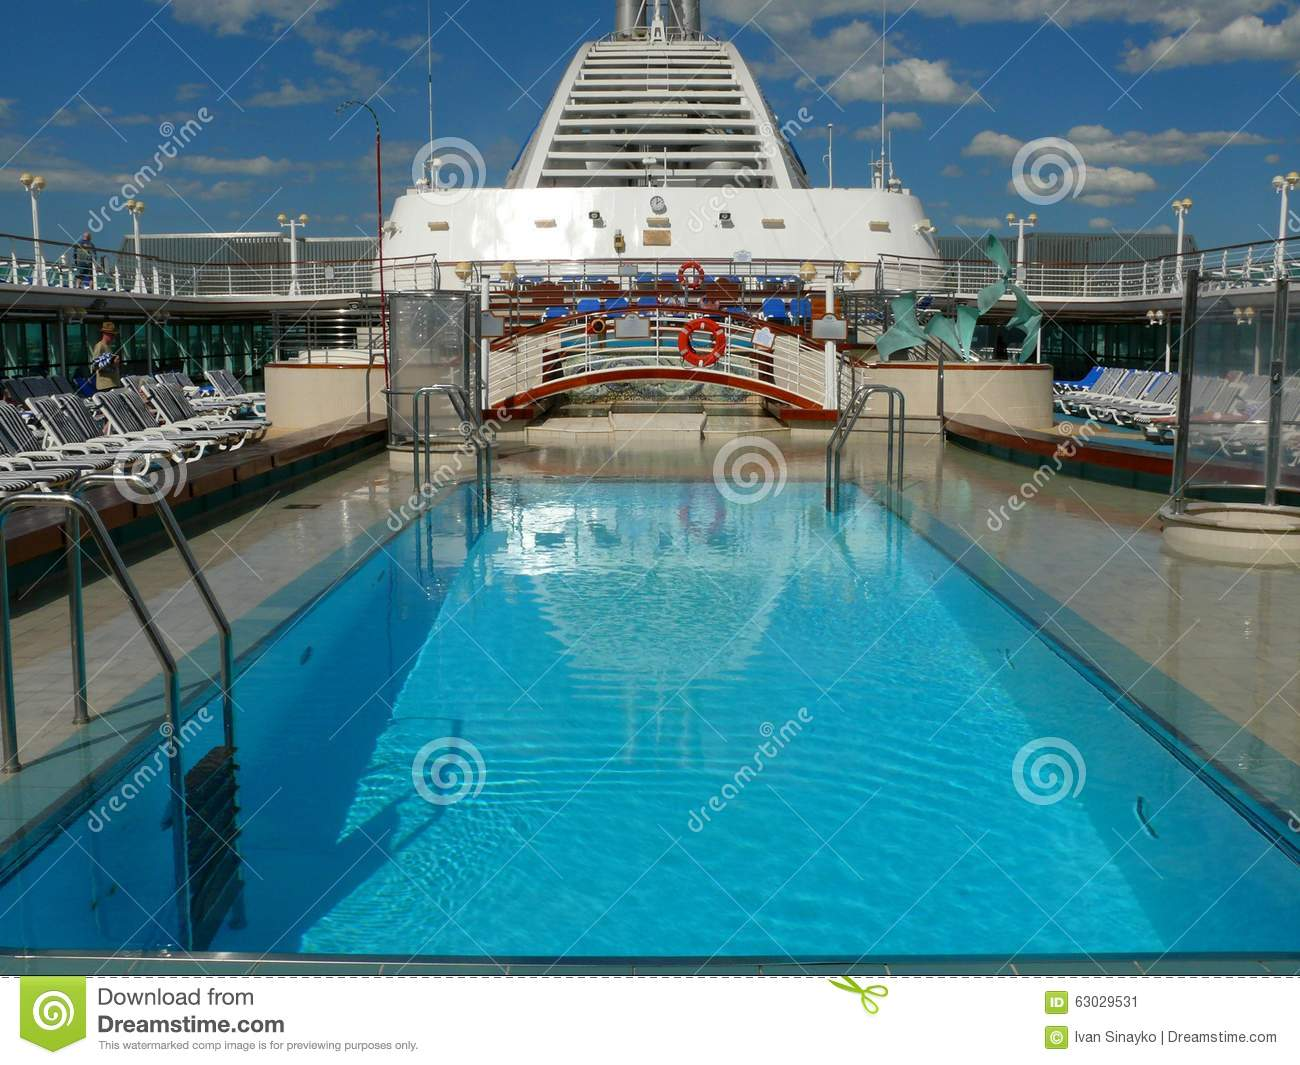 Pool Deck On The Cruise Ship Editorial Photo Image Of Blue Jacuzzi 63029531